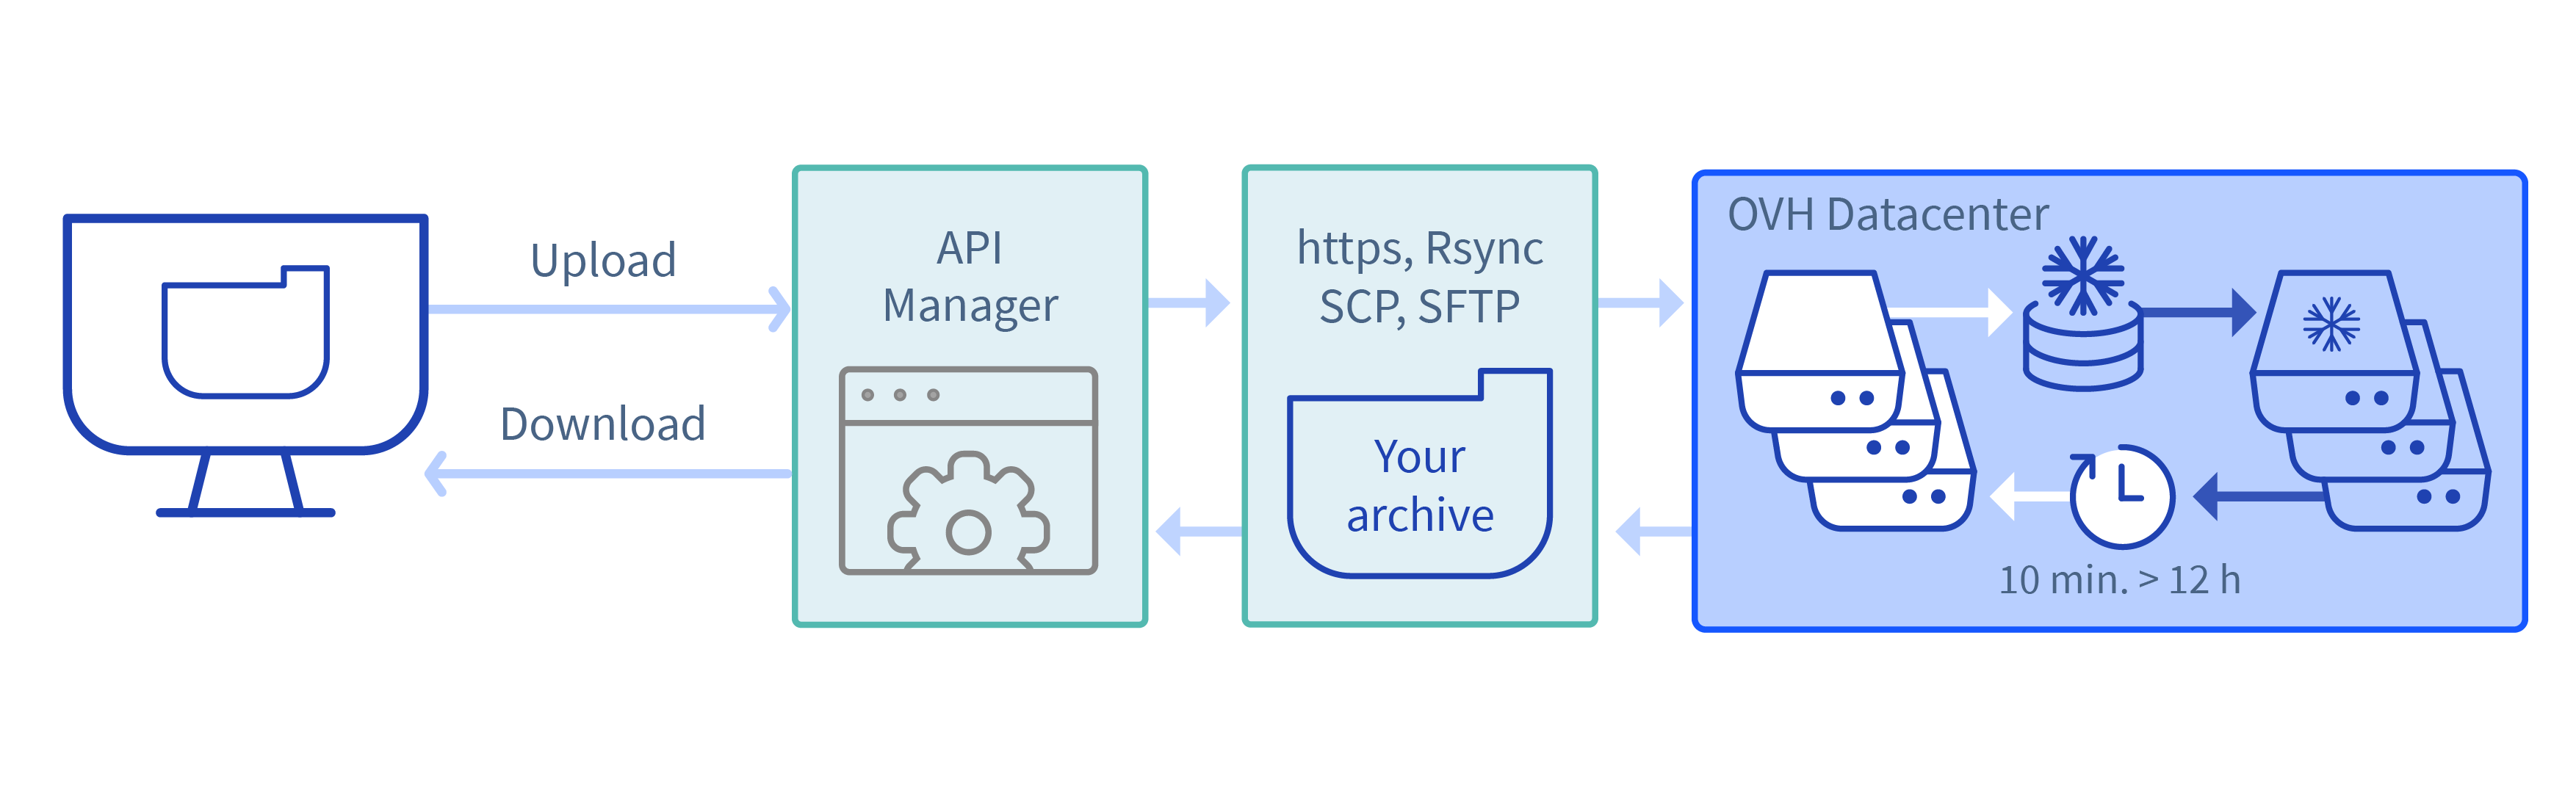 Easy-to-use Archiving